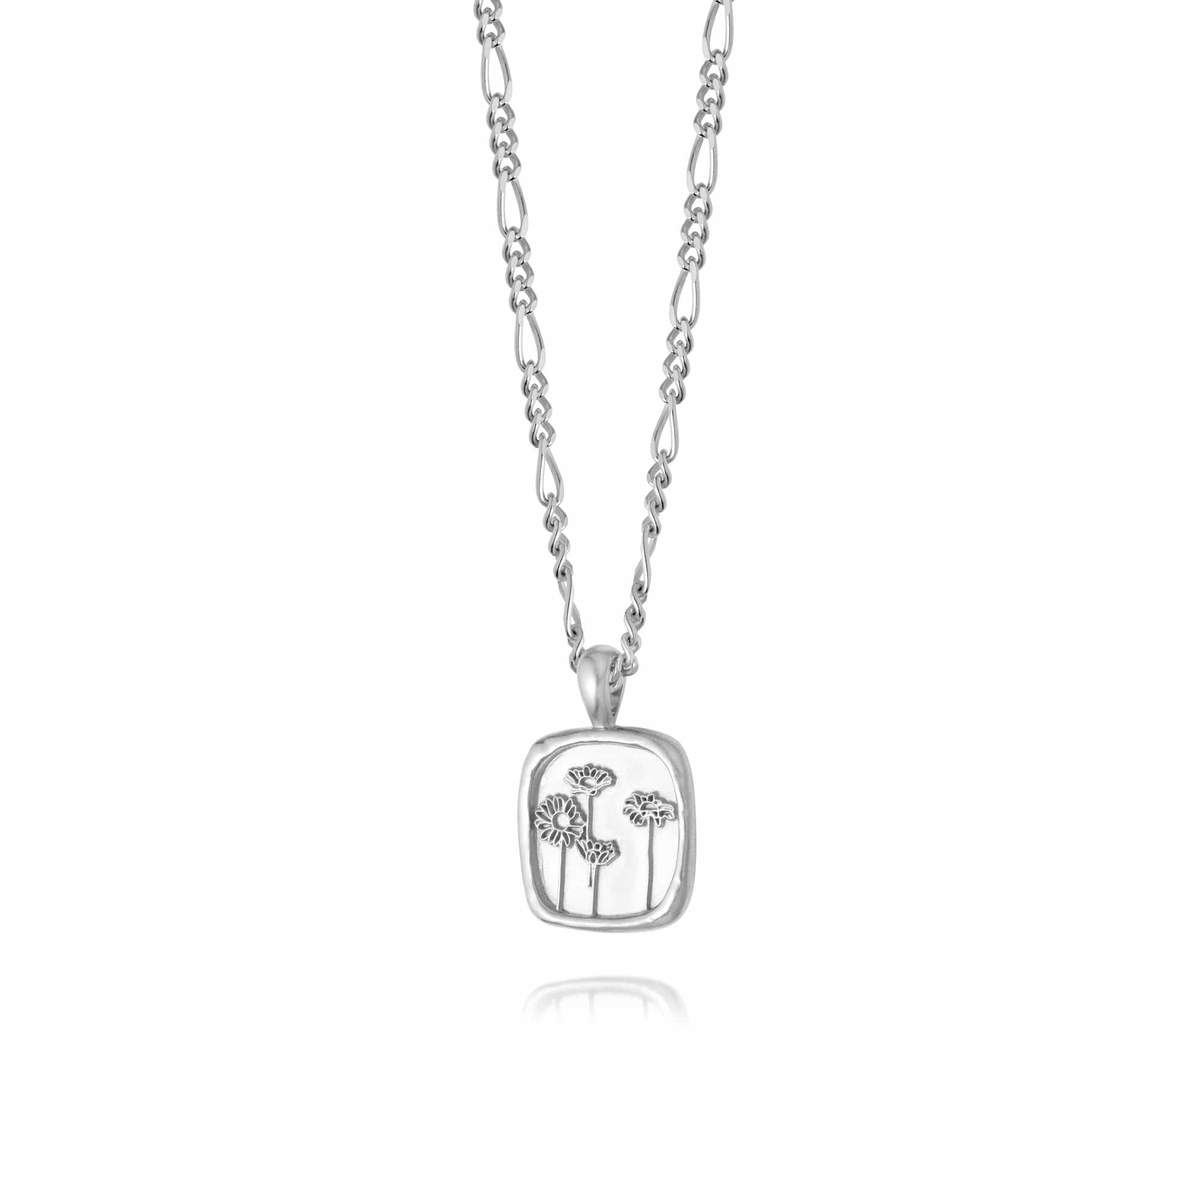 WILD DAISIES FLOWER NECKLACE - STERLING SILVER